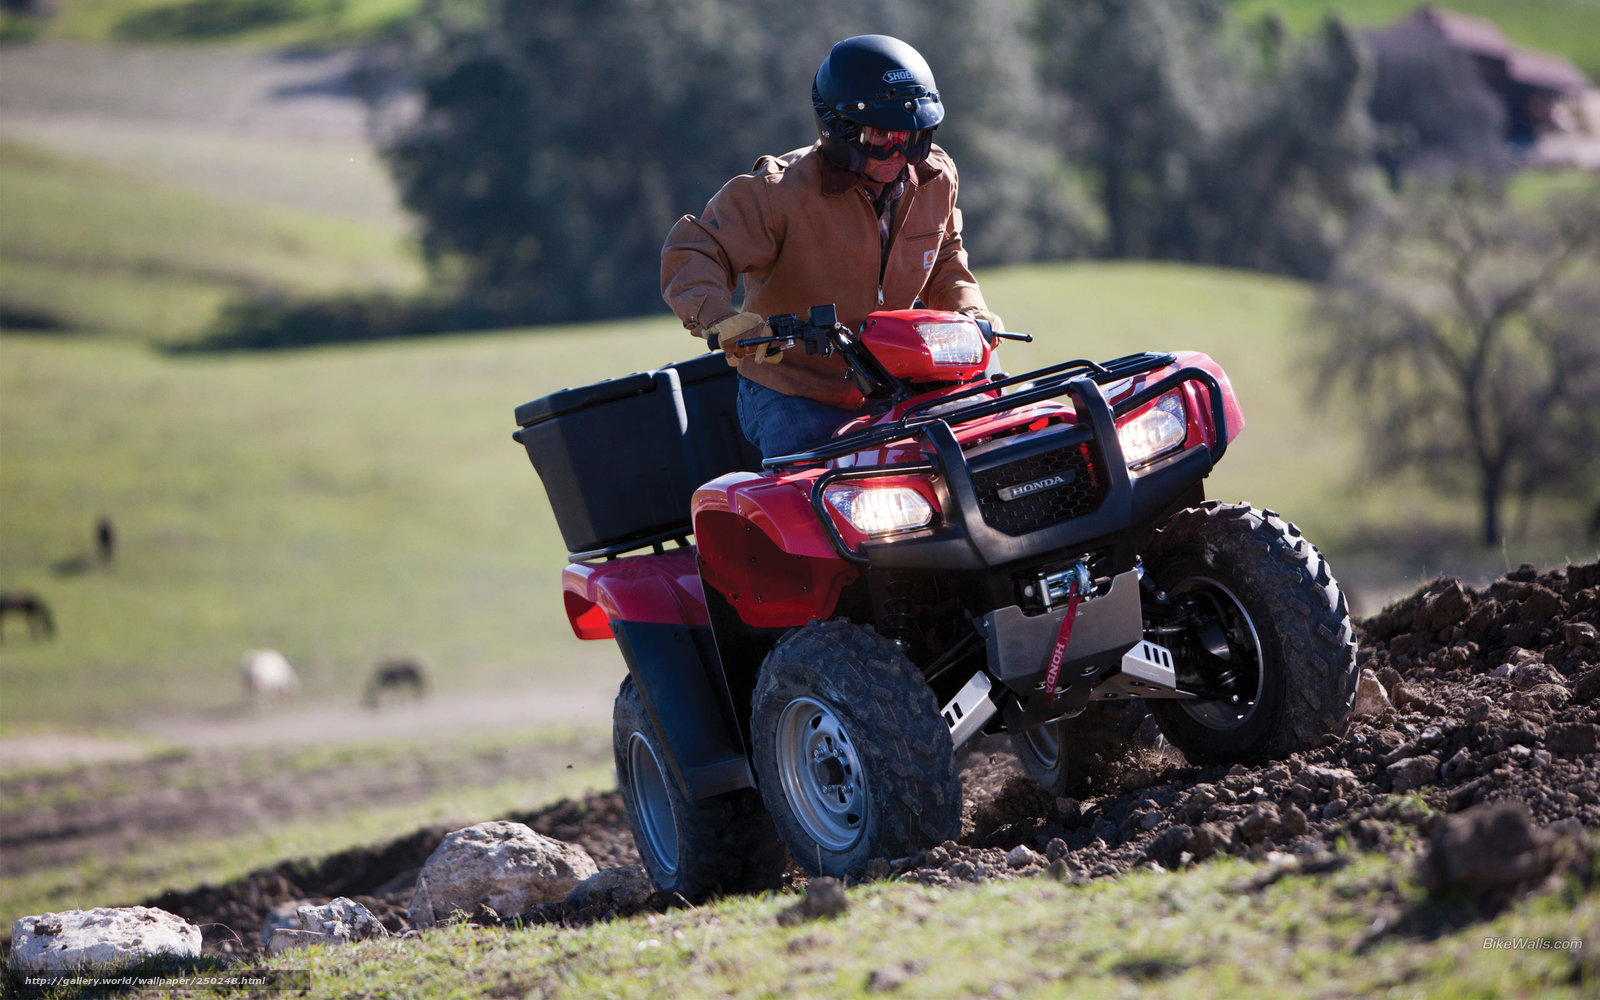 Download wallpaper Honda ATV FourTrax Foreman 2012 FourTrax Foreman 1600x1000